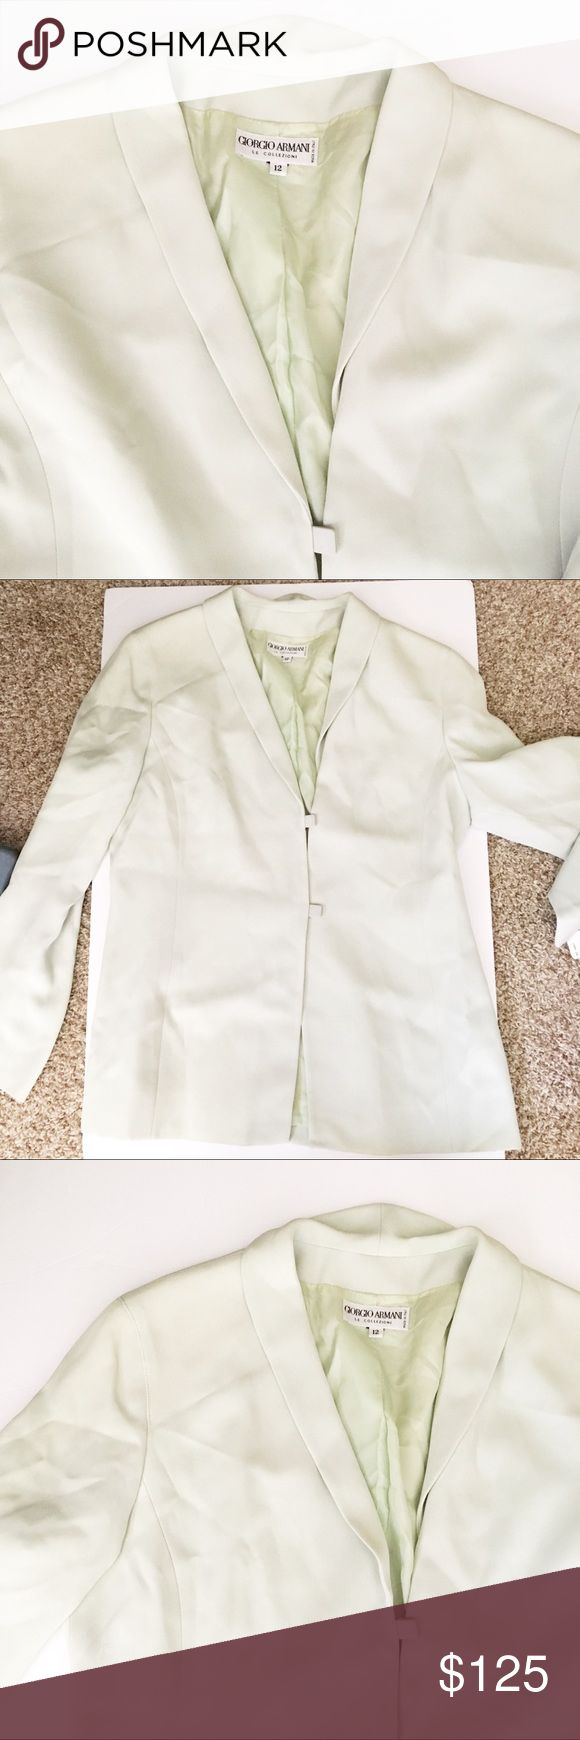 NWT Giorgio Armani Silk Blazer Retails $995. Only flaw is that it's slightly wrinkled but I can't dry clean because the tag is still on. Absolutely stunning. Would make an amazing classy Christmas present! Size 12 (large) fits true to size. Giorgio Armani Jackets & Coats Blazers